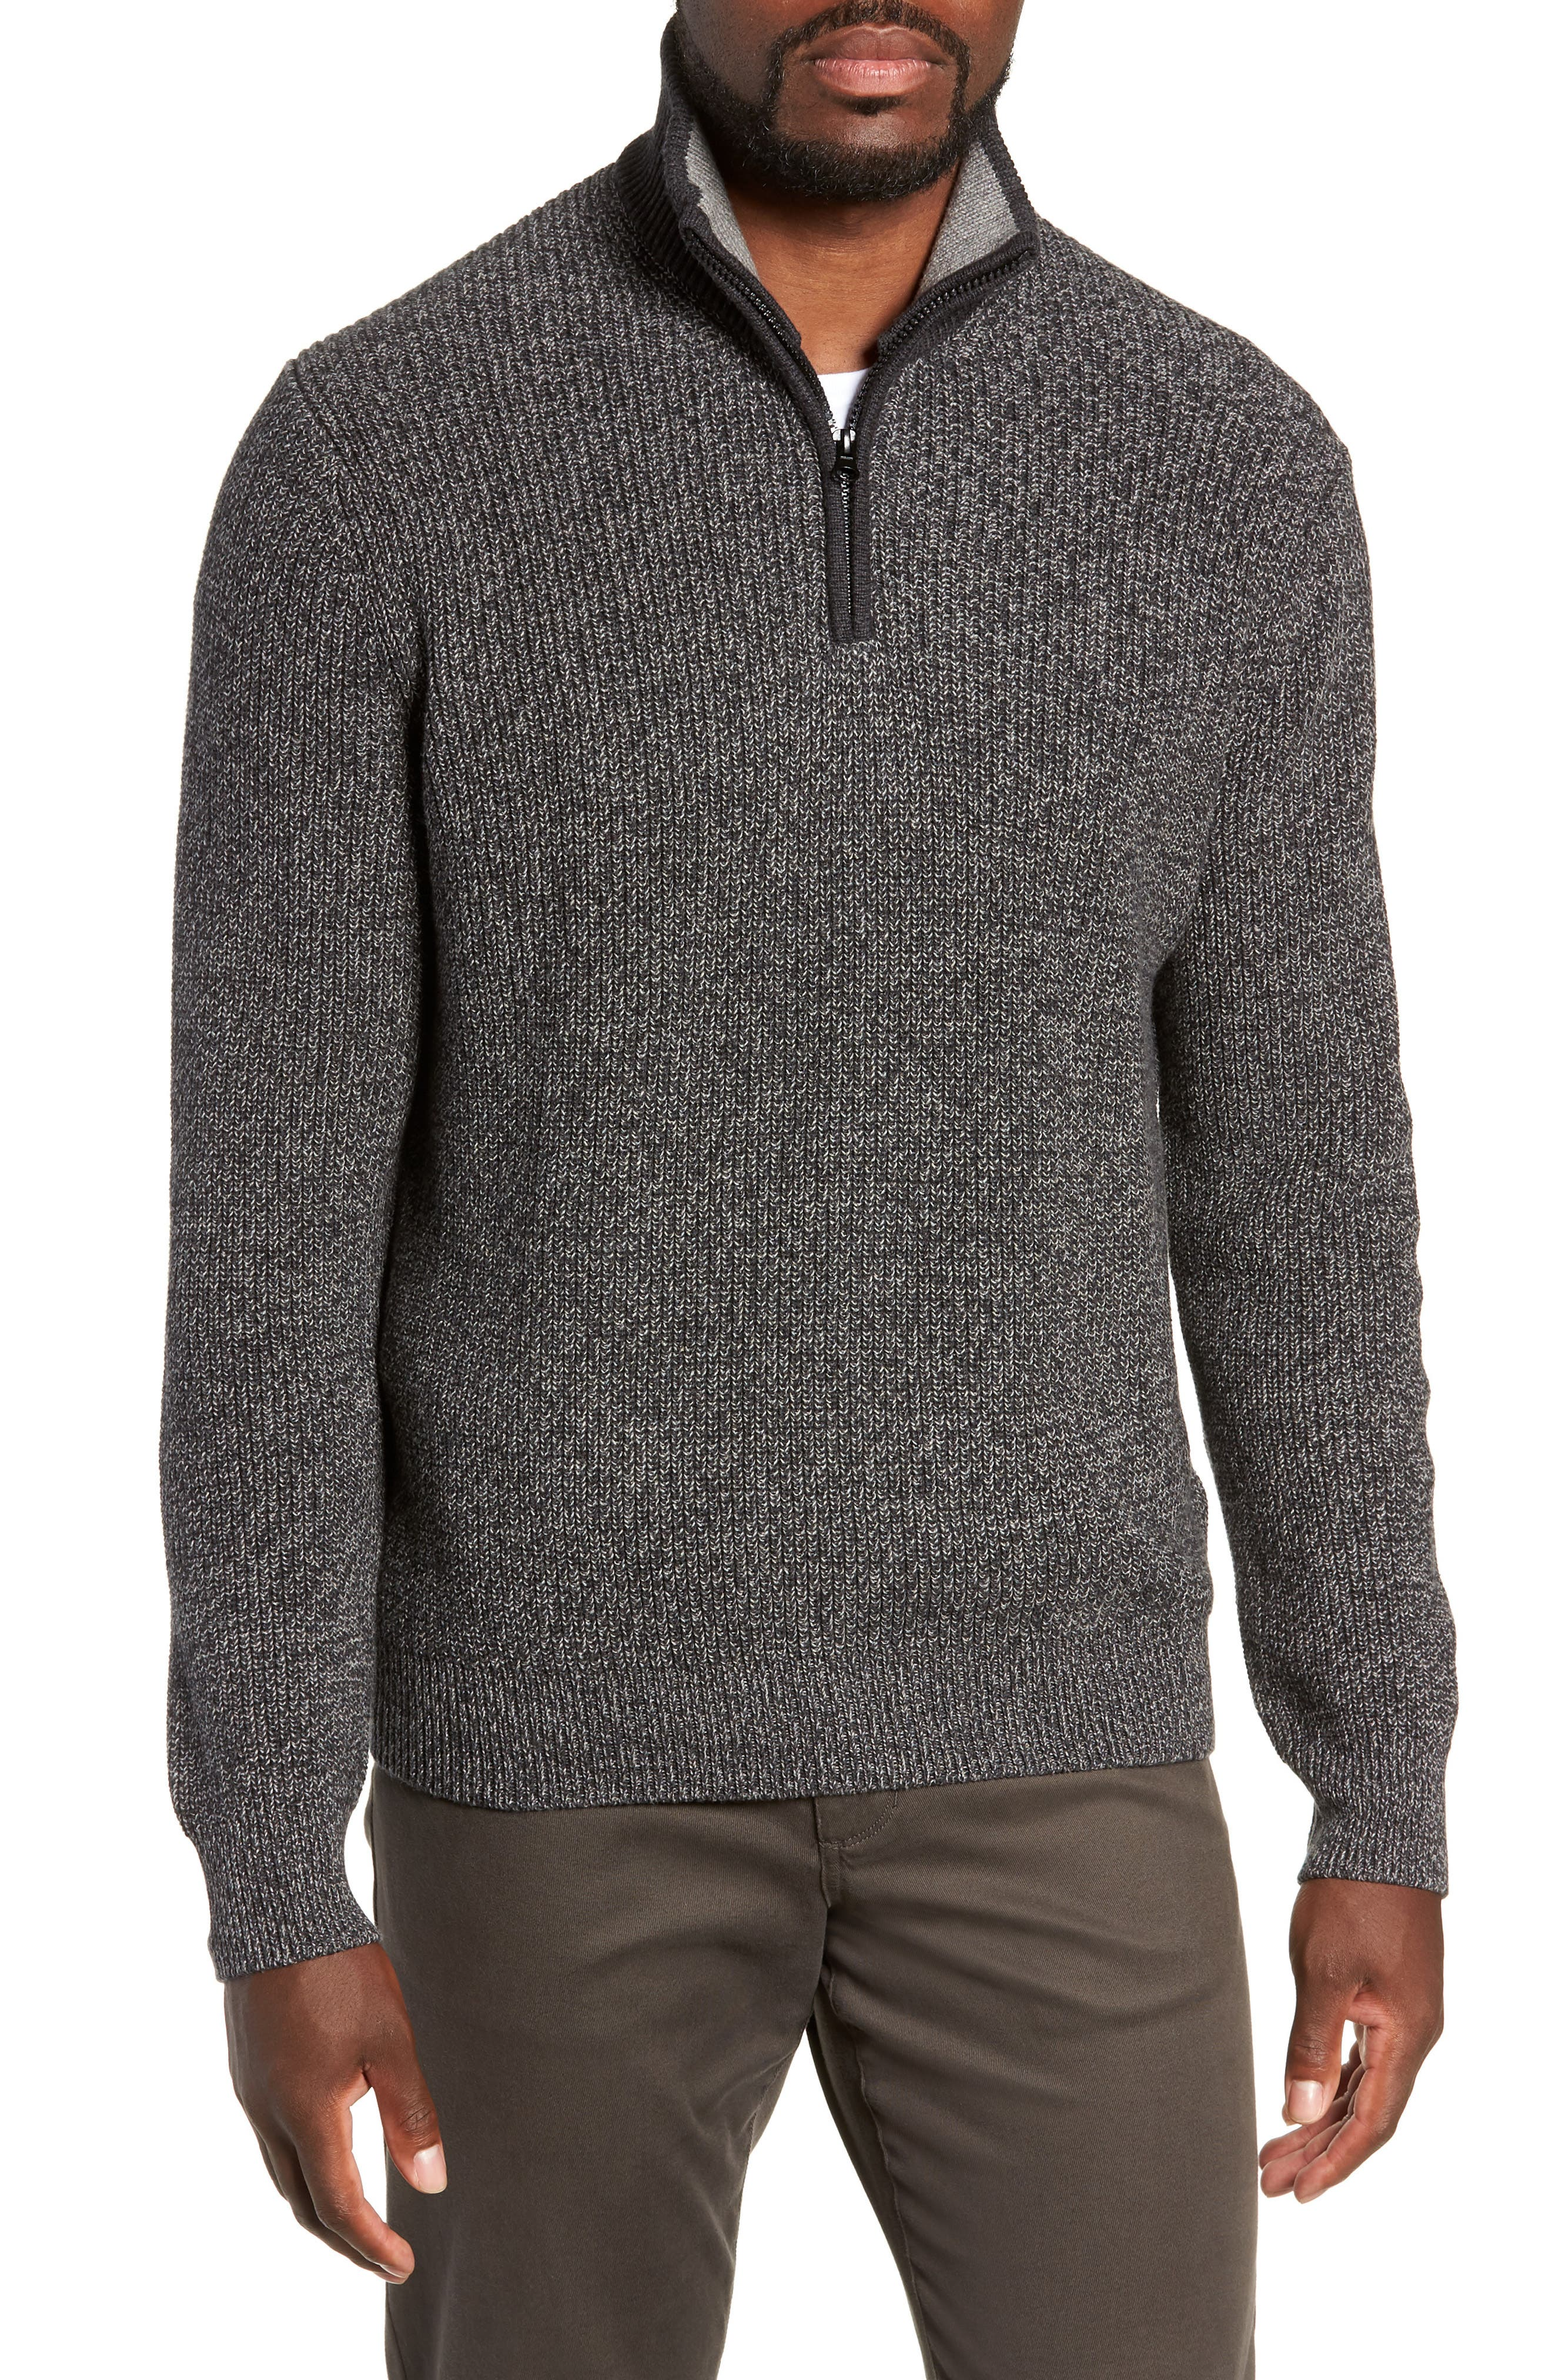 ZACHARY PRELL Fillmore Quarter Zip Sweater in Charcoal